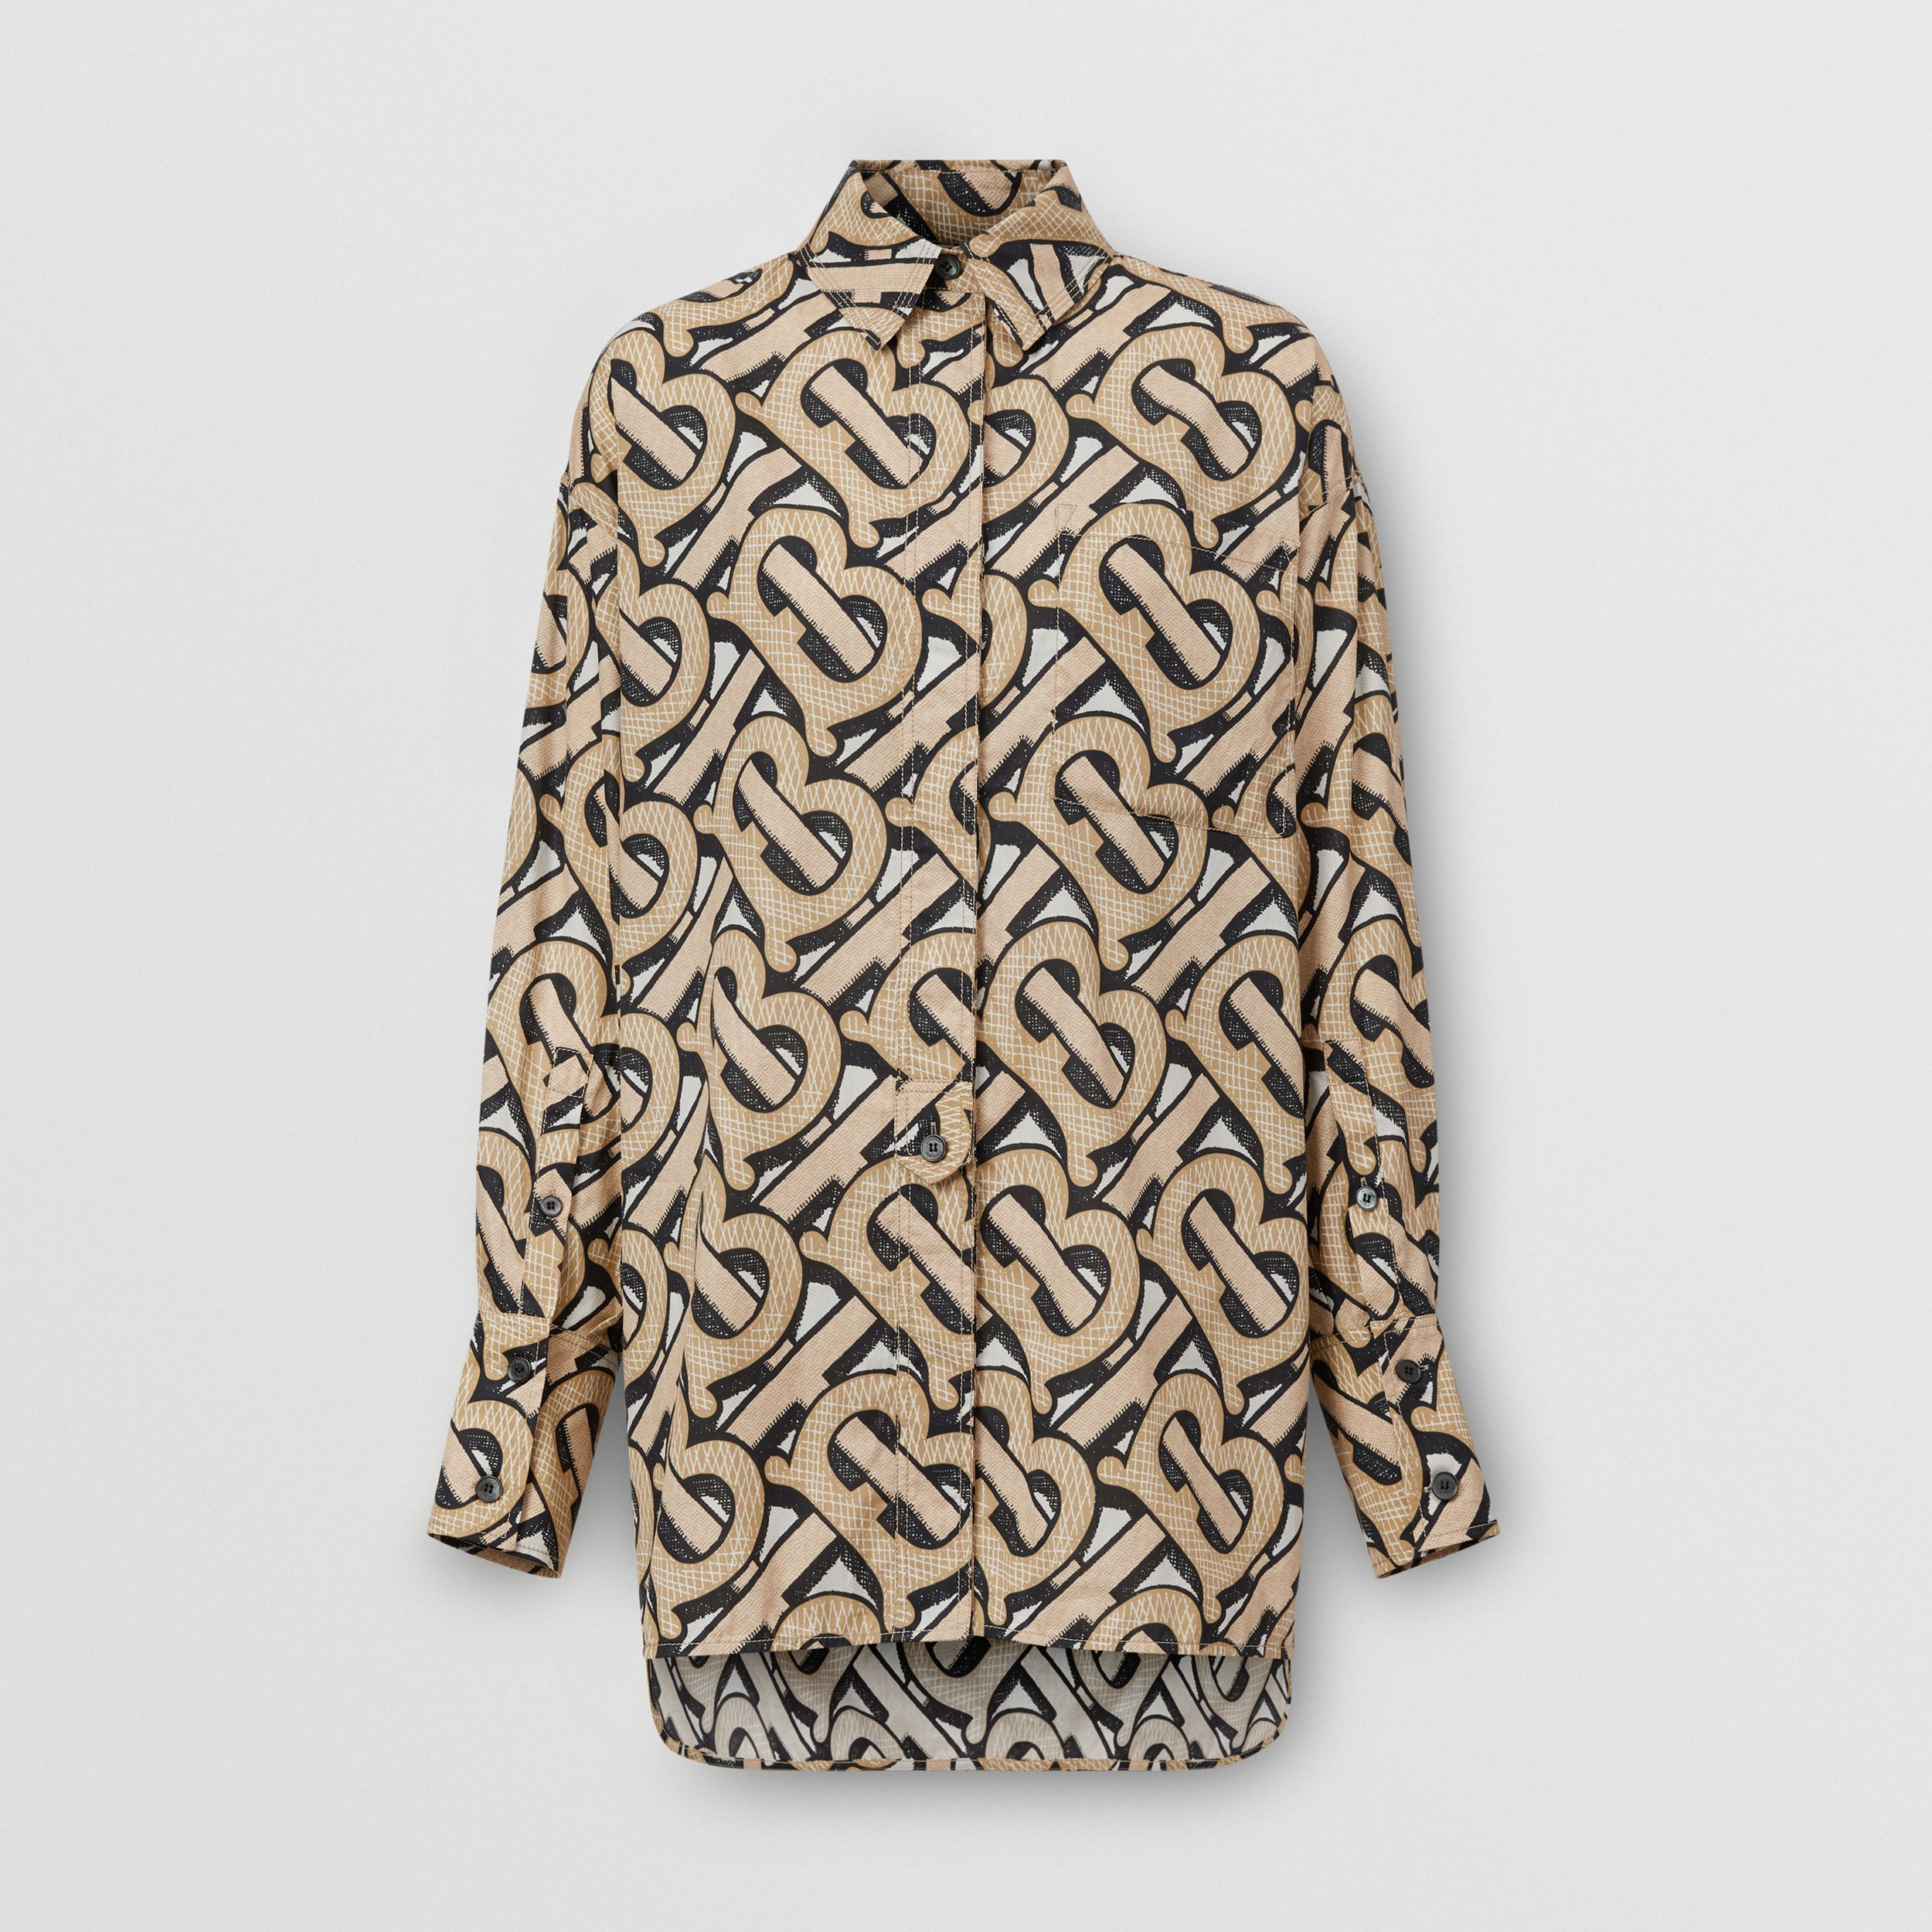 Monogram Print Cotton Poplin Oversized Shirt in Dark Beige - Women | Burberry - 4